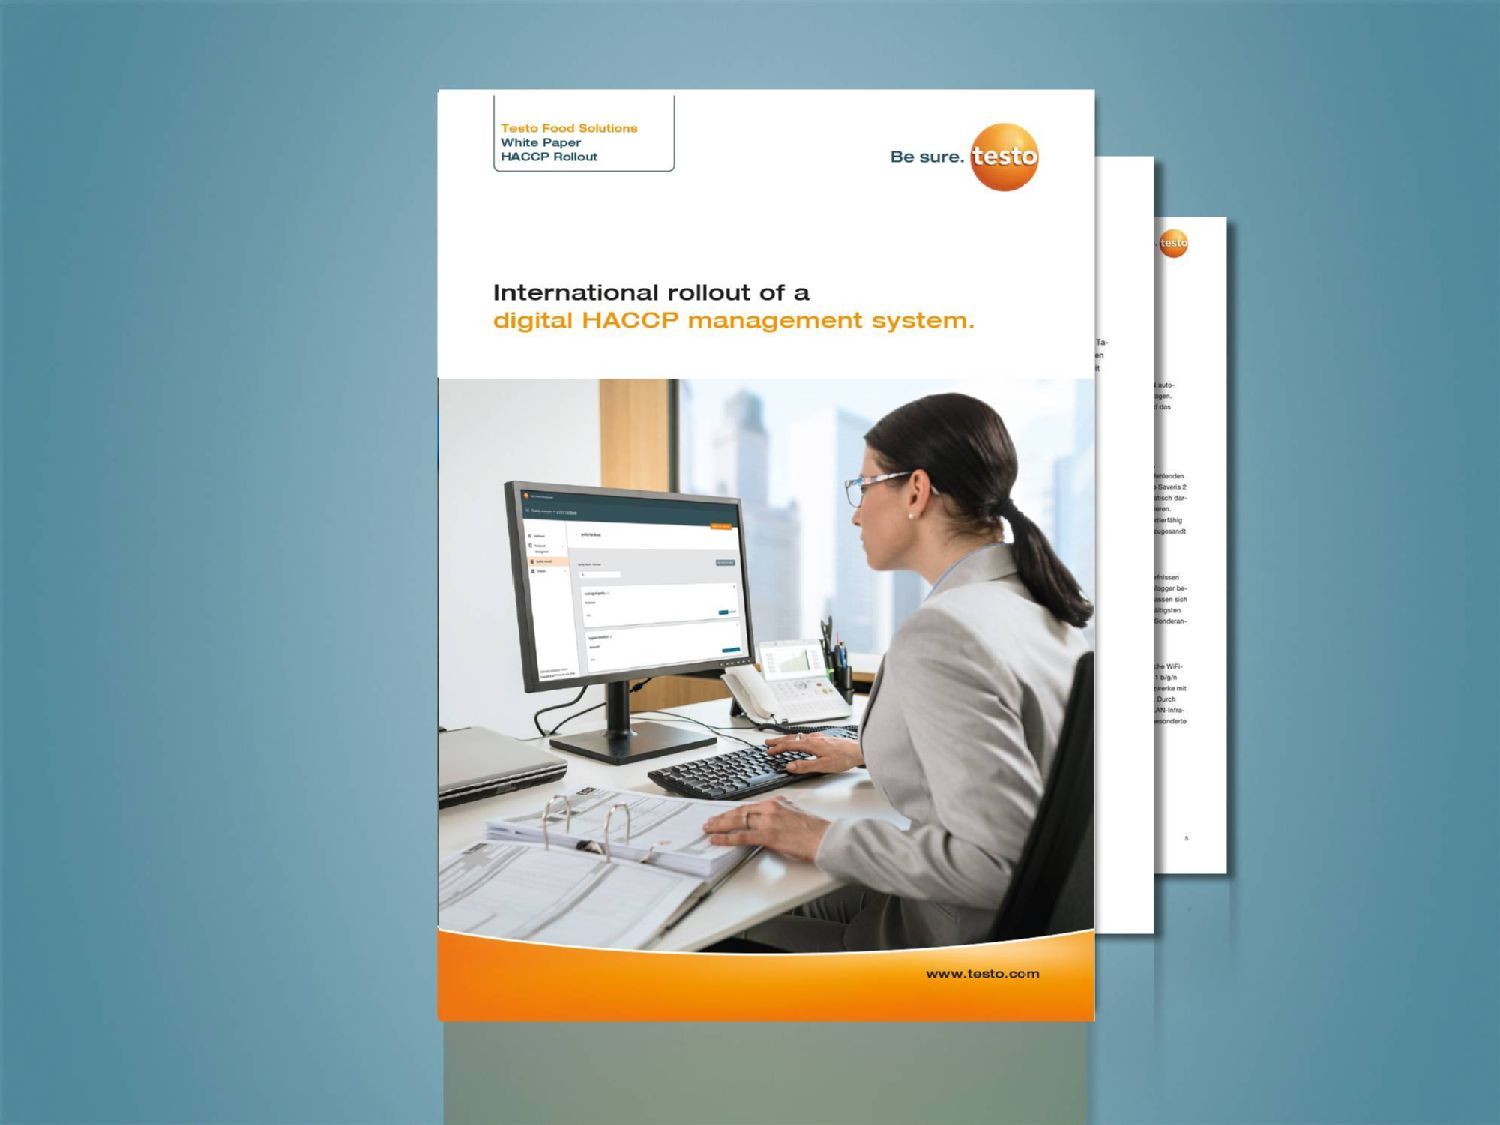 whitepaper HACCP rollout